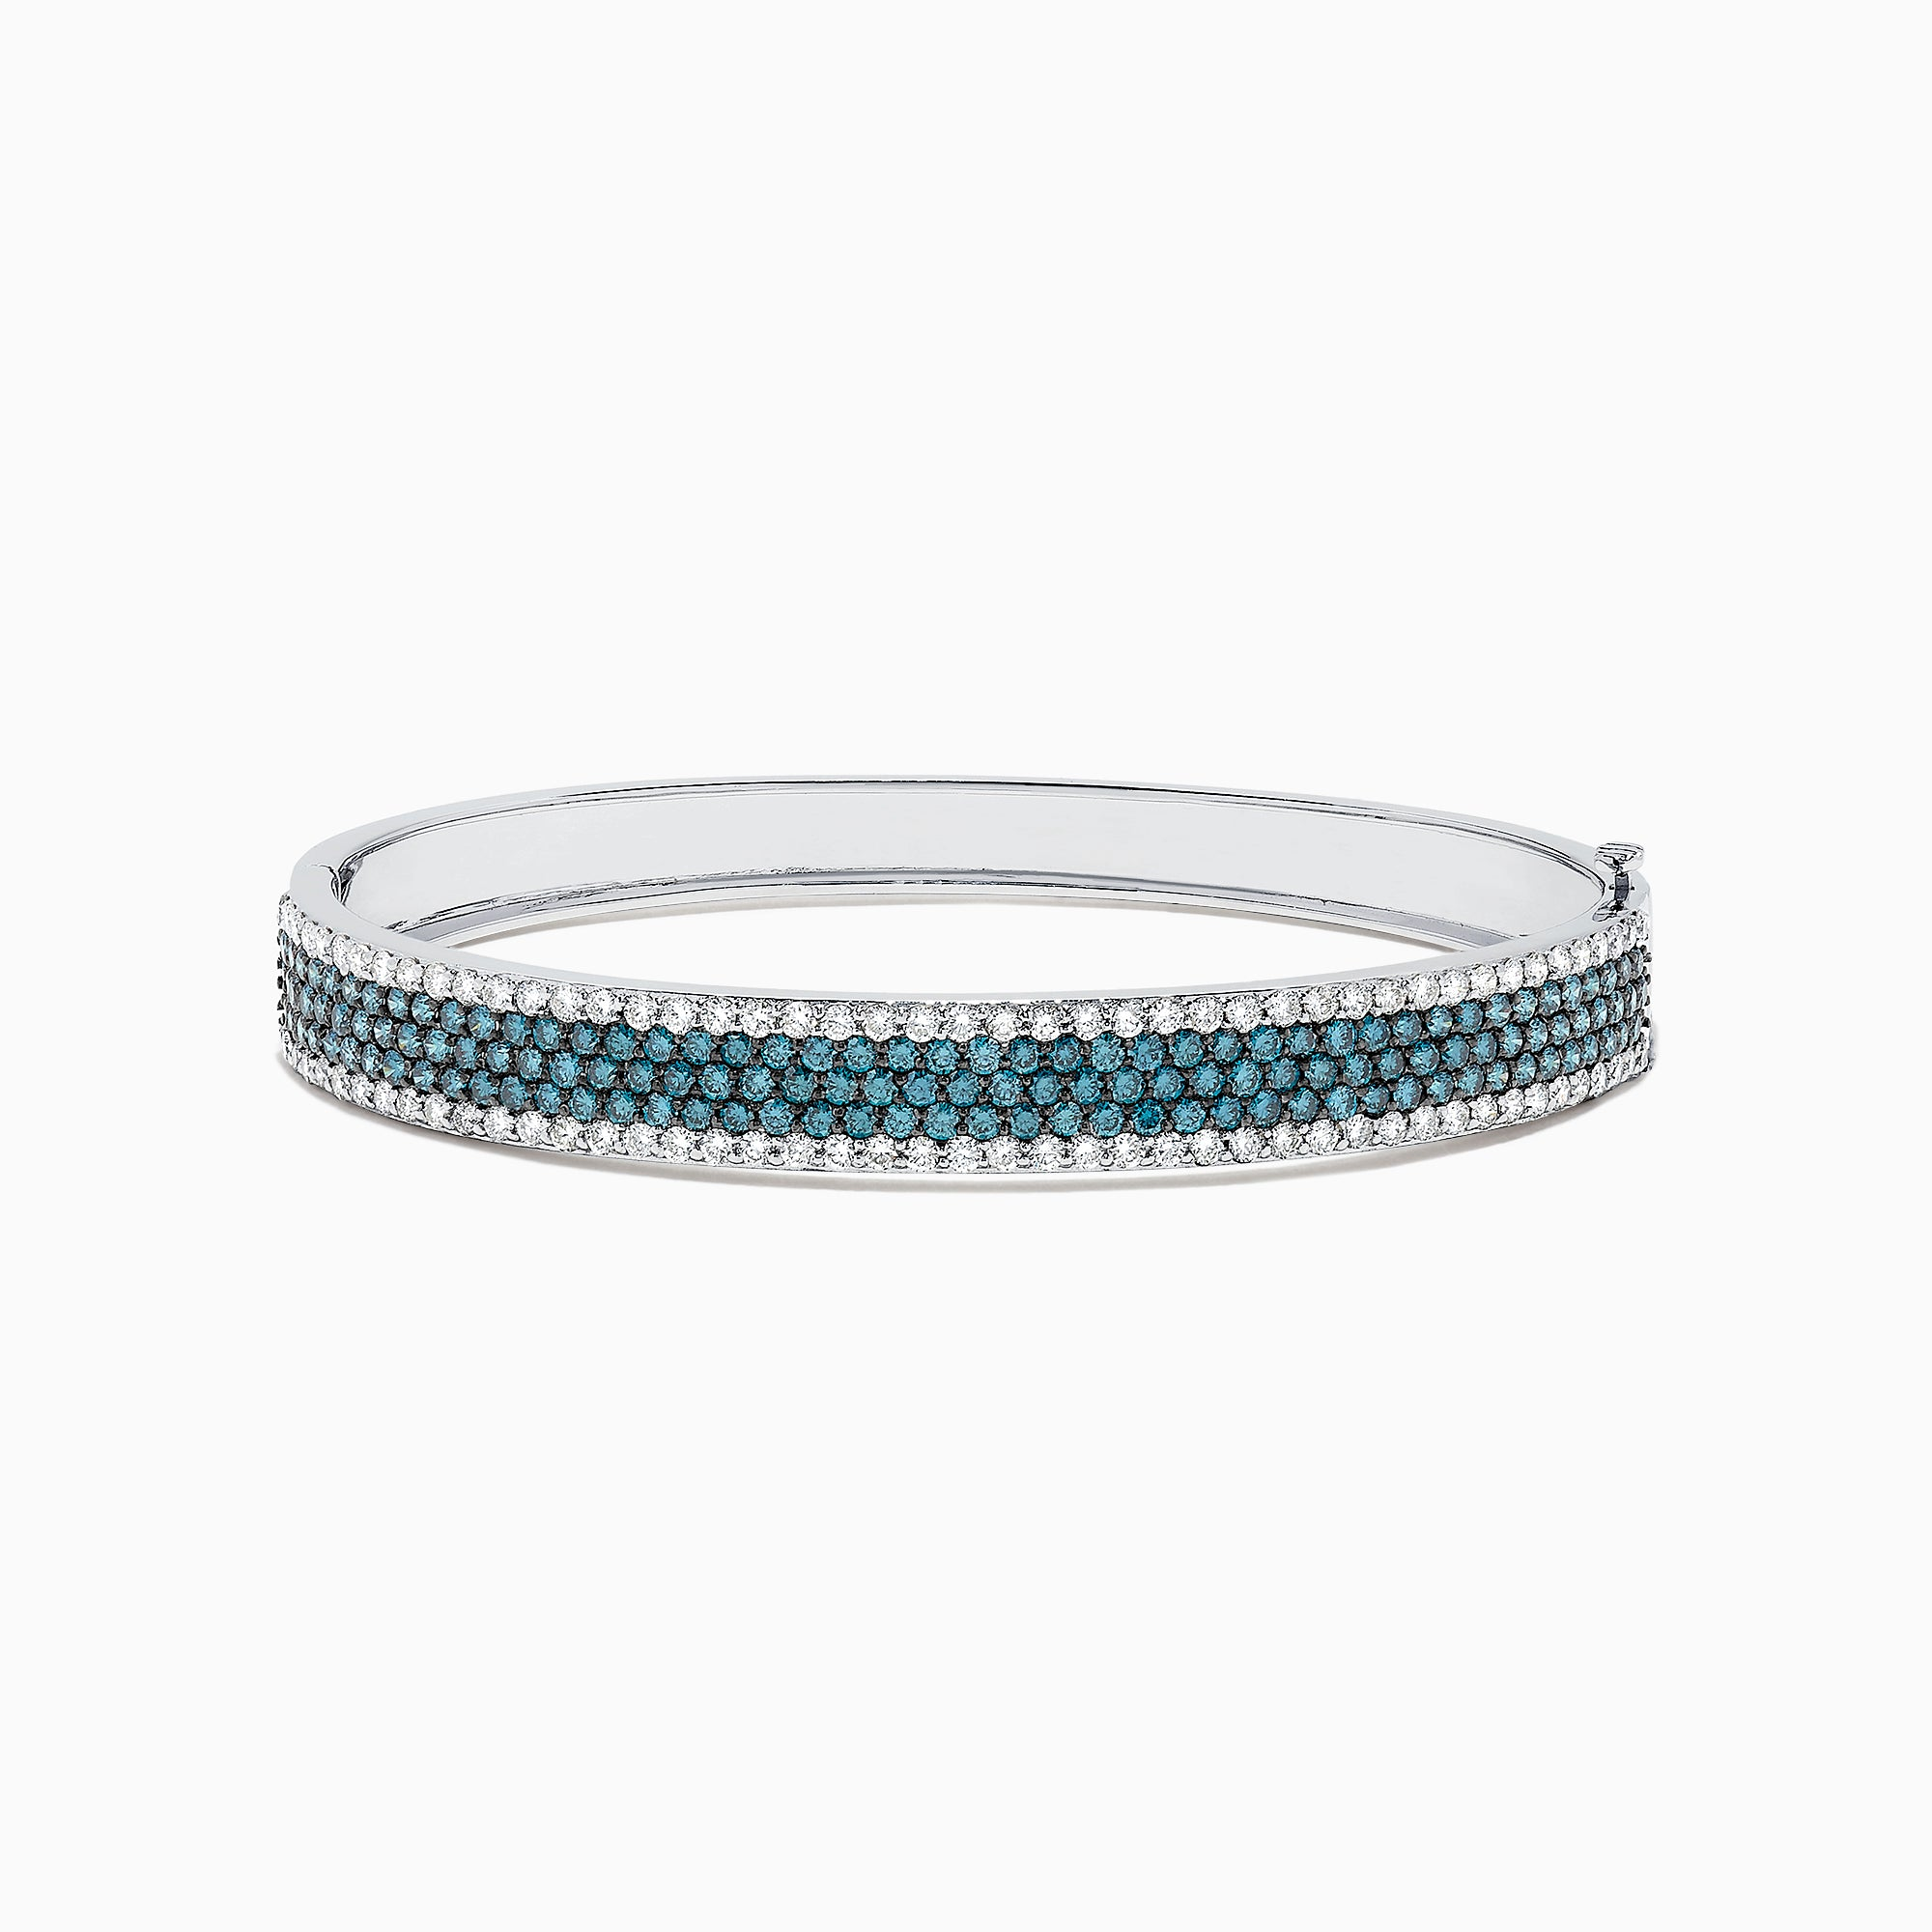 Effy Bella Bleu 14K White Gold Blue and White Diamond Bangle, 4.47 TCW